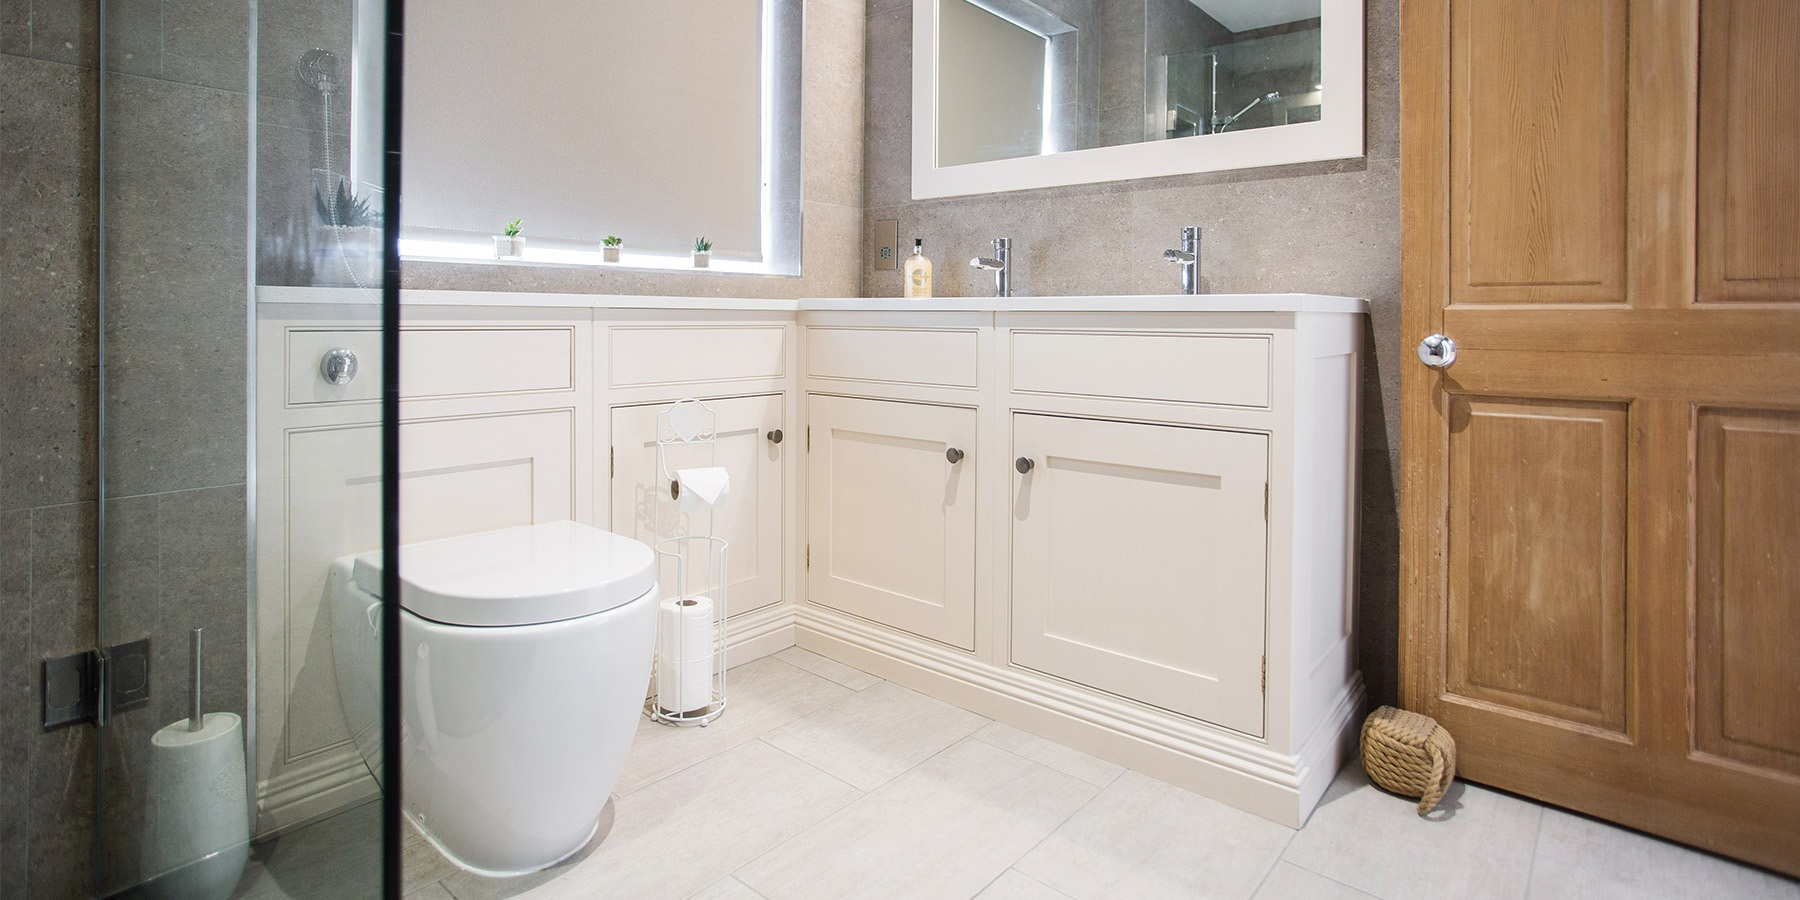 Bespoke Luxury En-Suite - Burlanes handmade en-suite bathroom furniture.